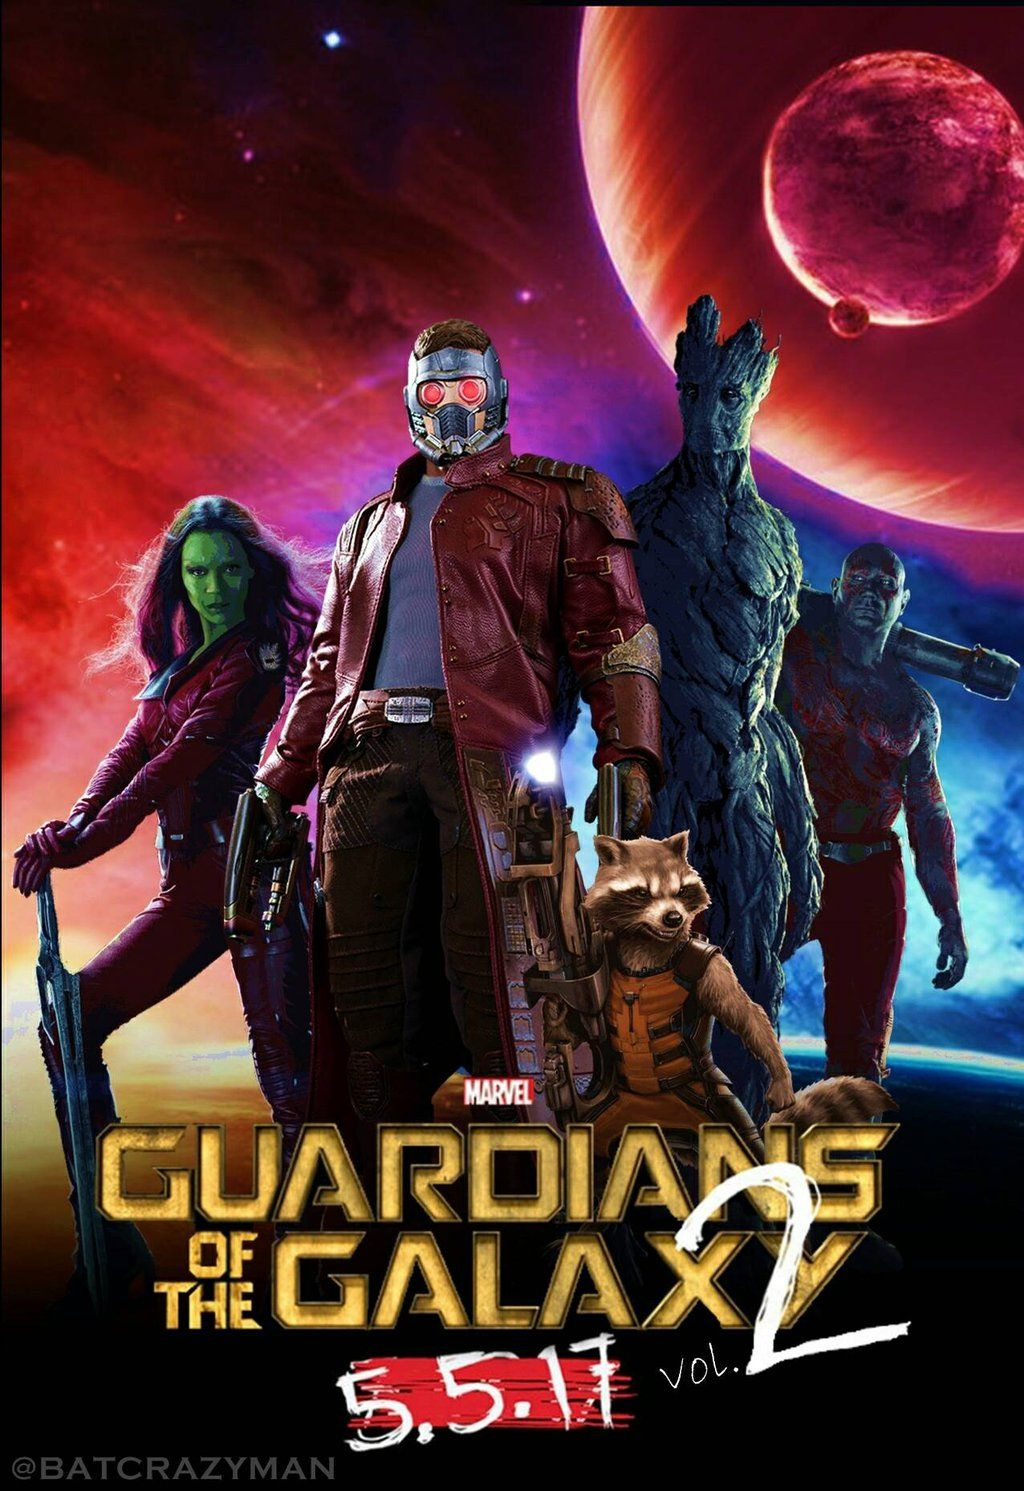 watch guardians of the galaxy vol 2 stream ing online for free